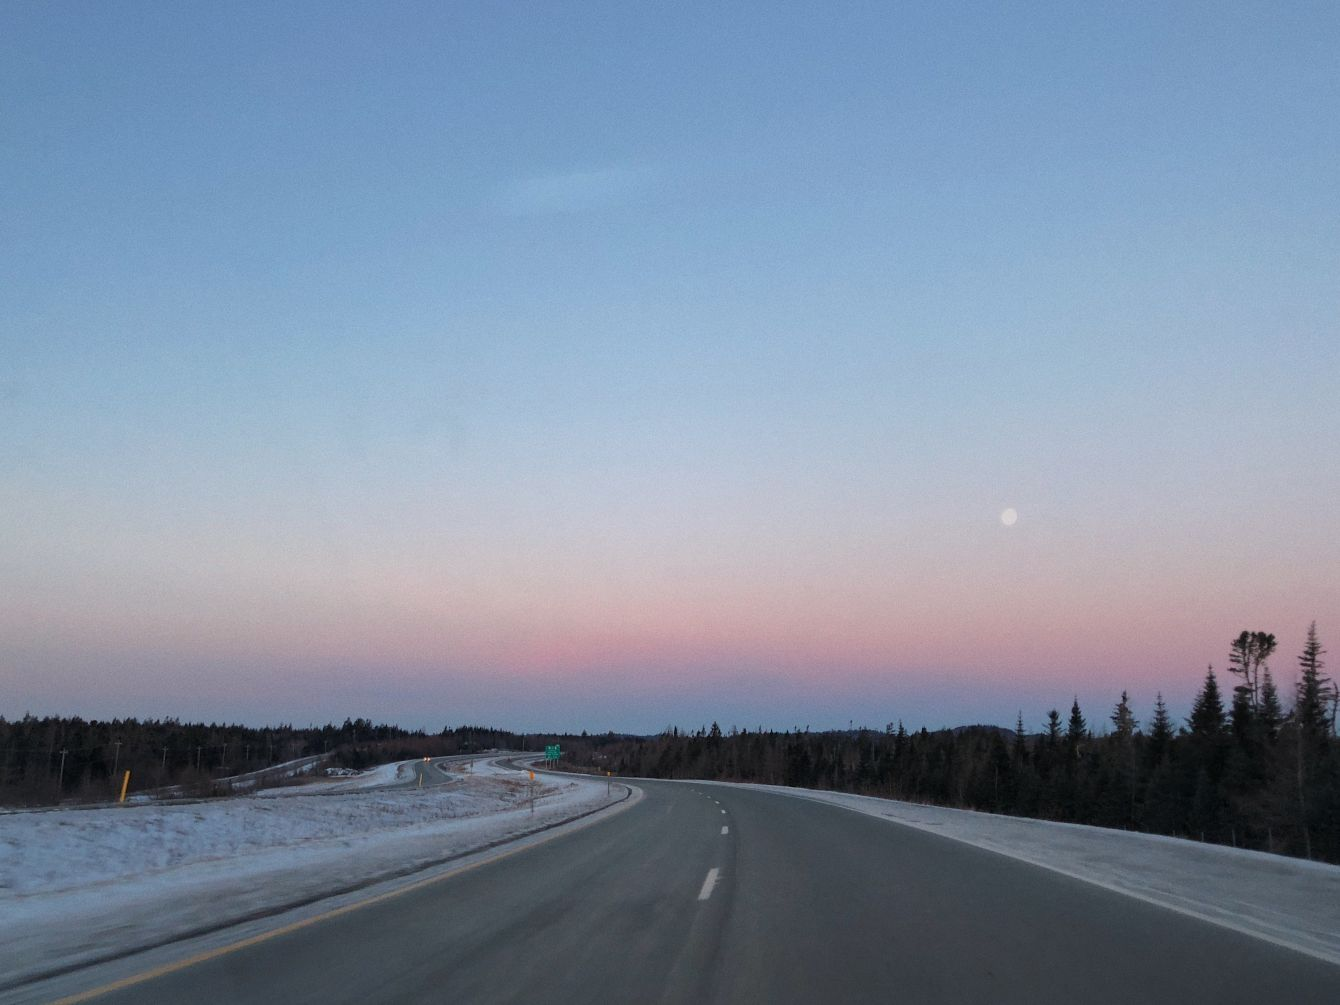 Click thumbnail to see details about photo - Route 1 in the Morning Photograph